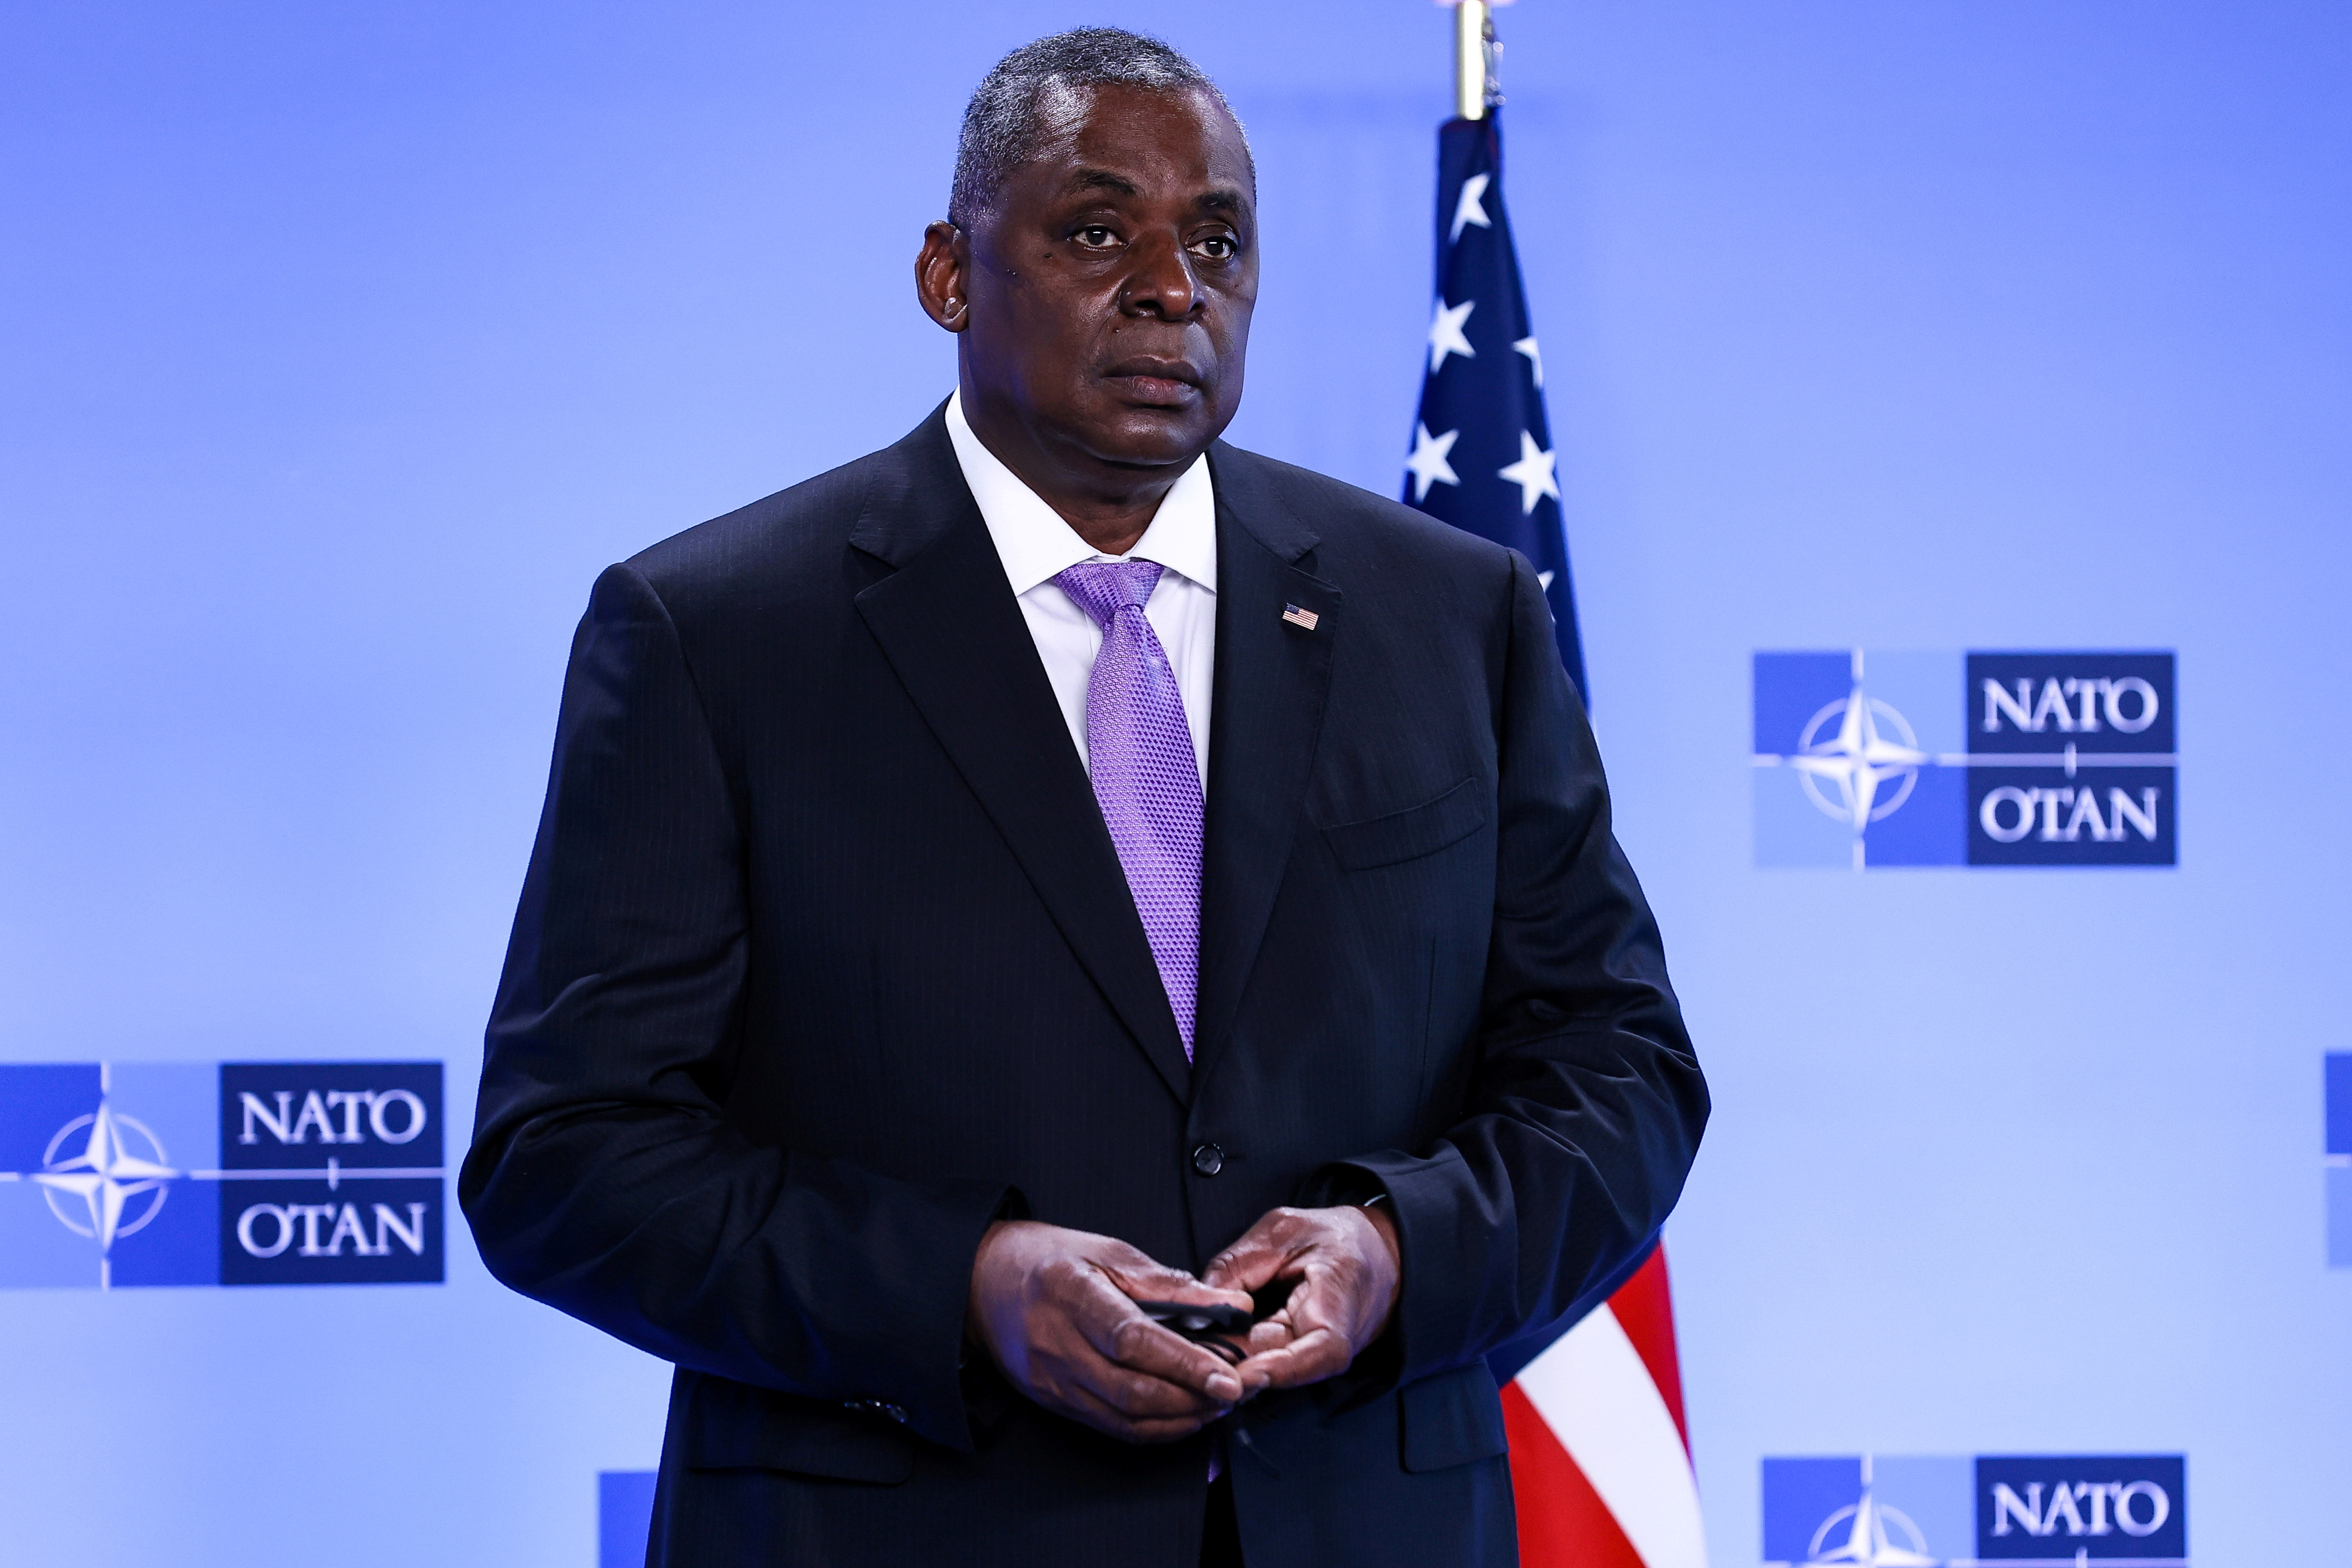 U.S. Defense Secretary Lloyd Austin looks on as he arrives for a meeting of foreign ministers of the U.S., Britain, France and Germany on Afghanistan at NATO's headquarters in Brussels, Belgium, April 14, 2021. Kenzo Tribouillard/Pool via Reuters